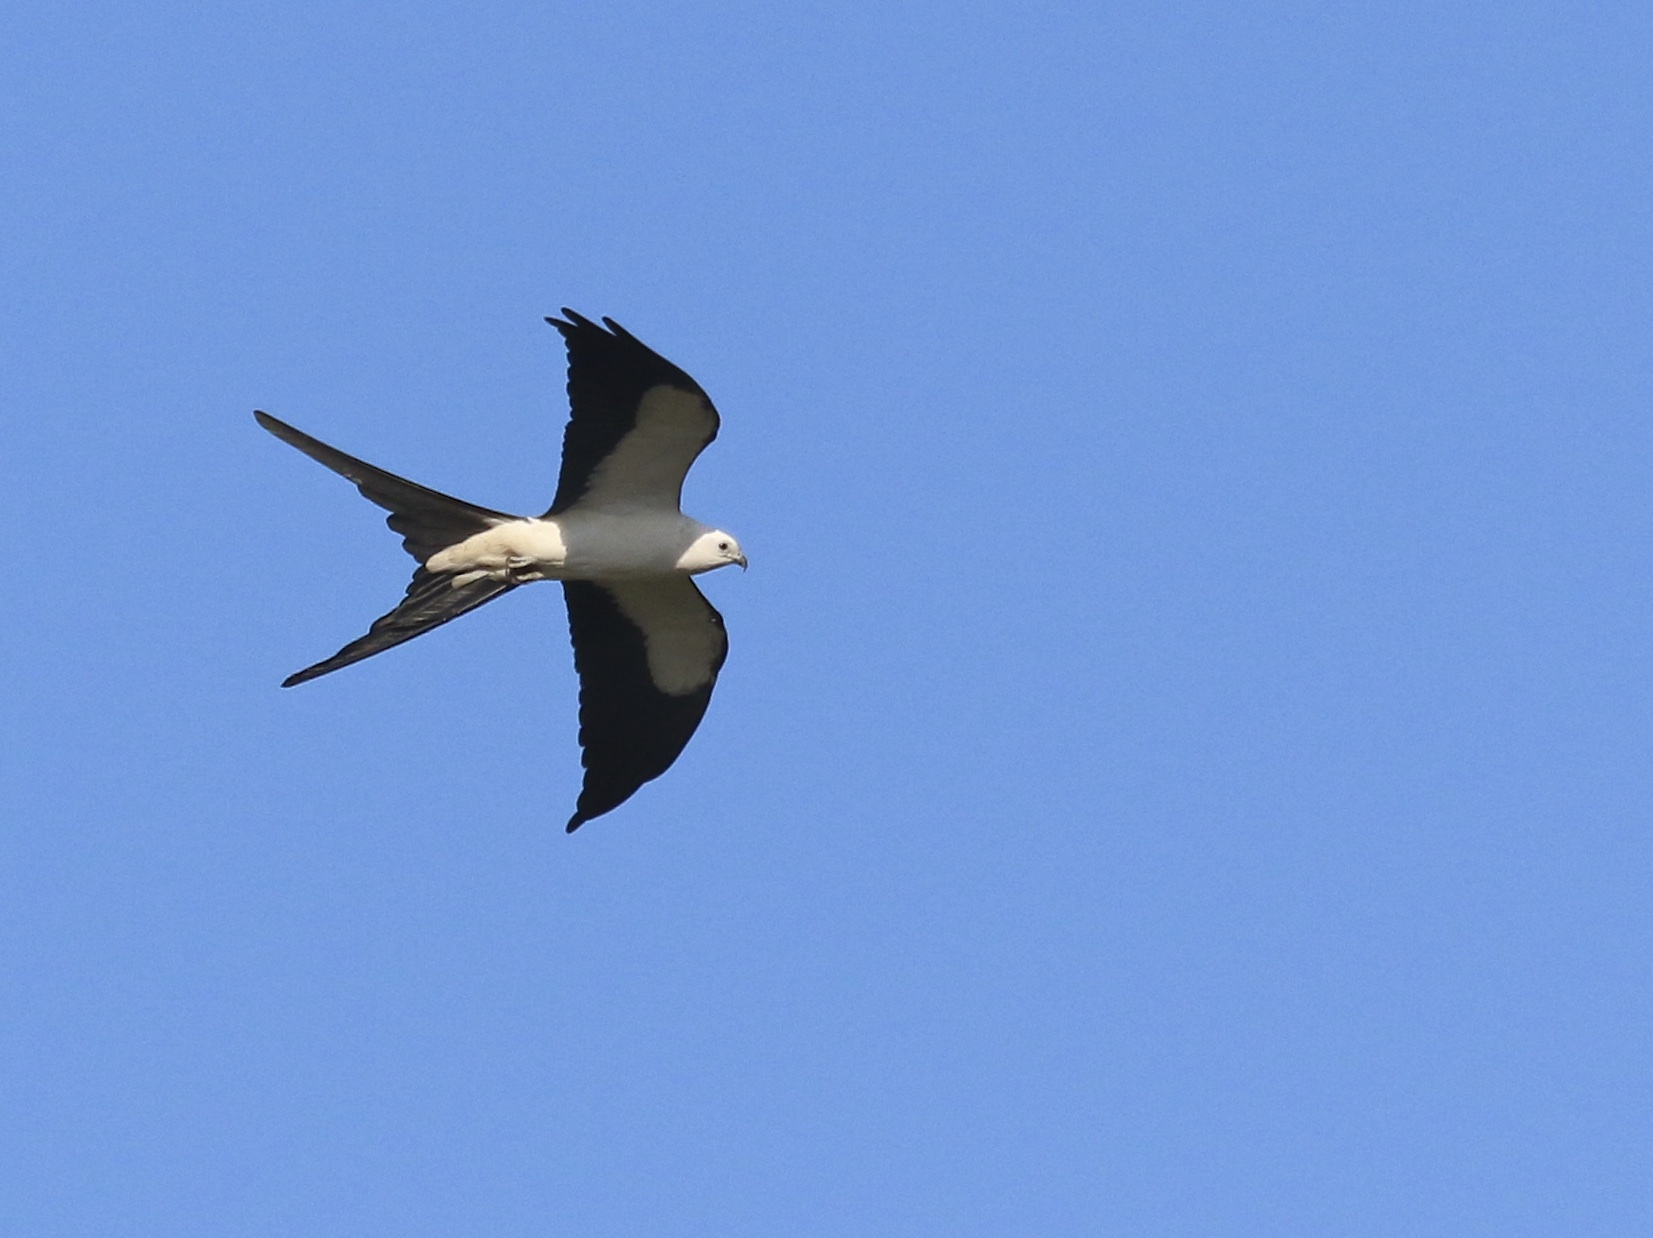 Another Swallow-tailed Kite  seen while biking in our neighborhood, Bonita Springs Florida 5/3/15.~